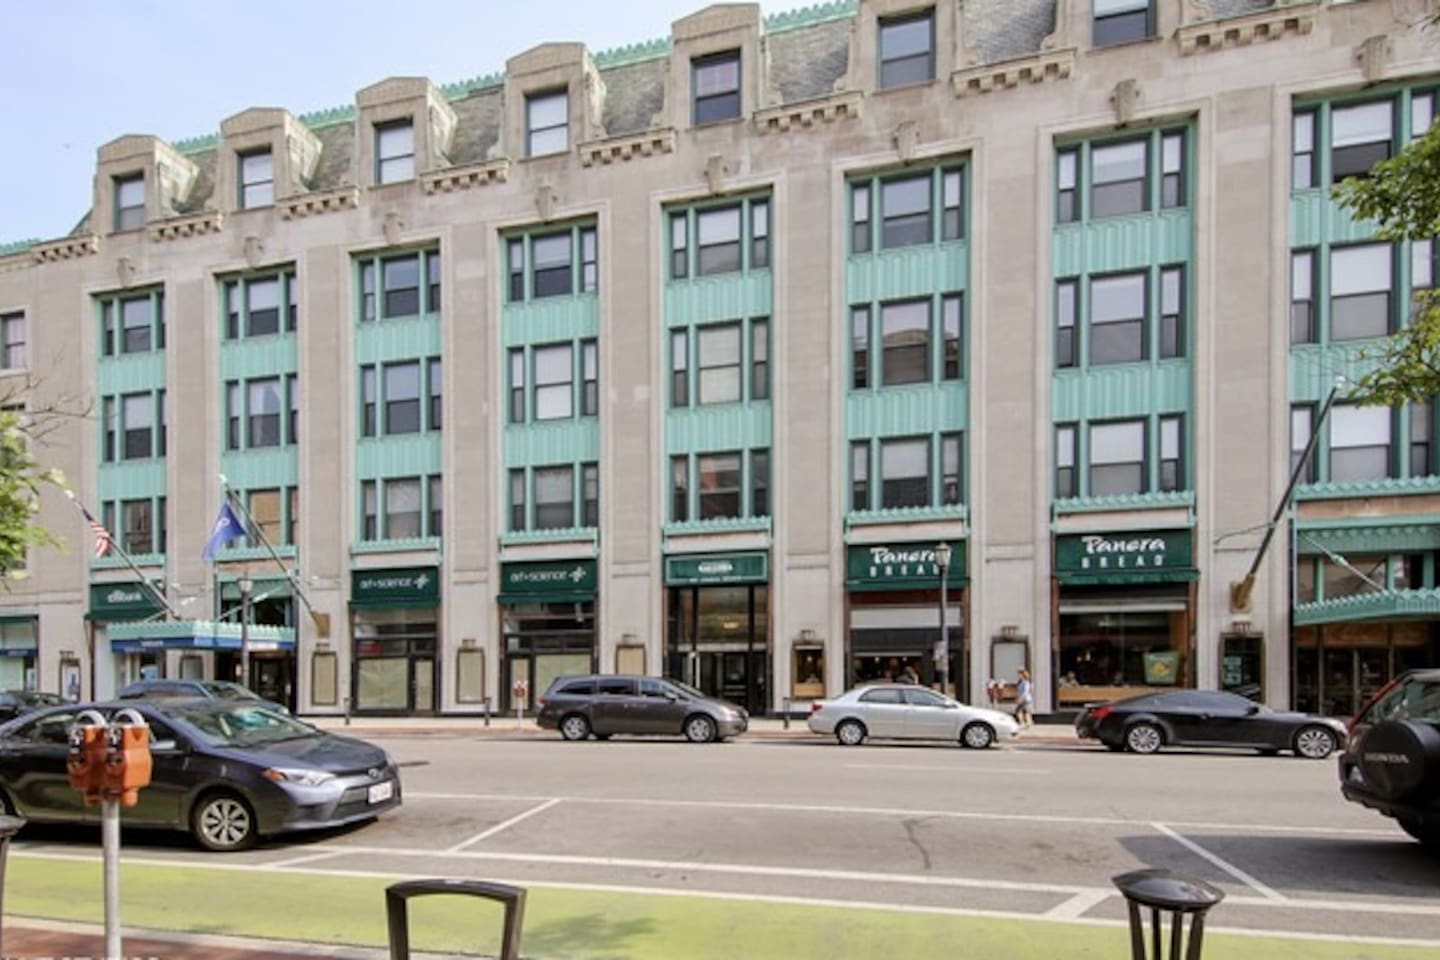 Location, Location, Location- Downtown Evanston and close to everything!